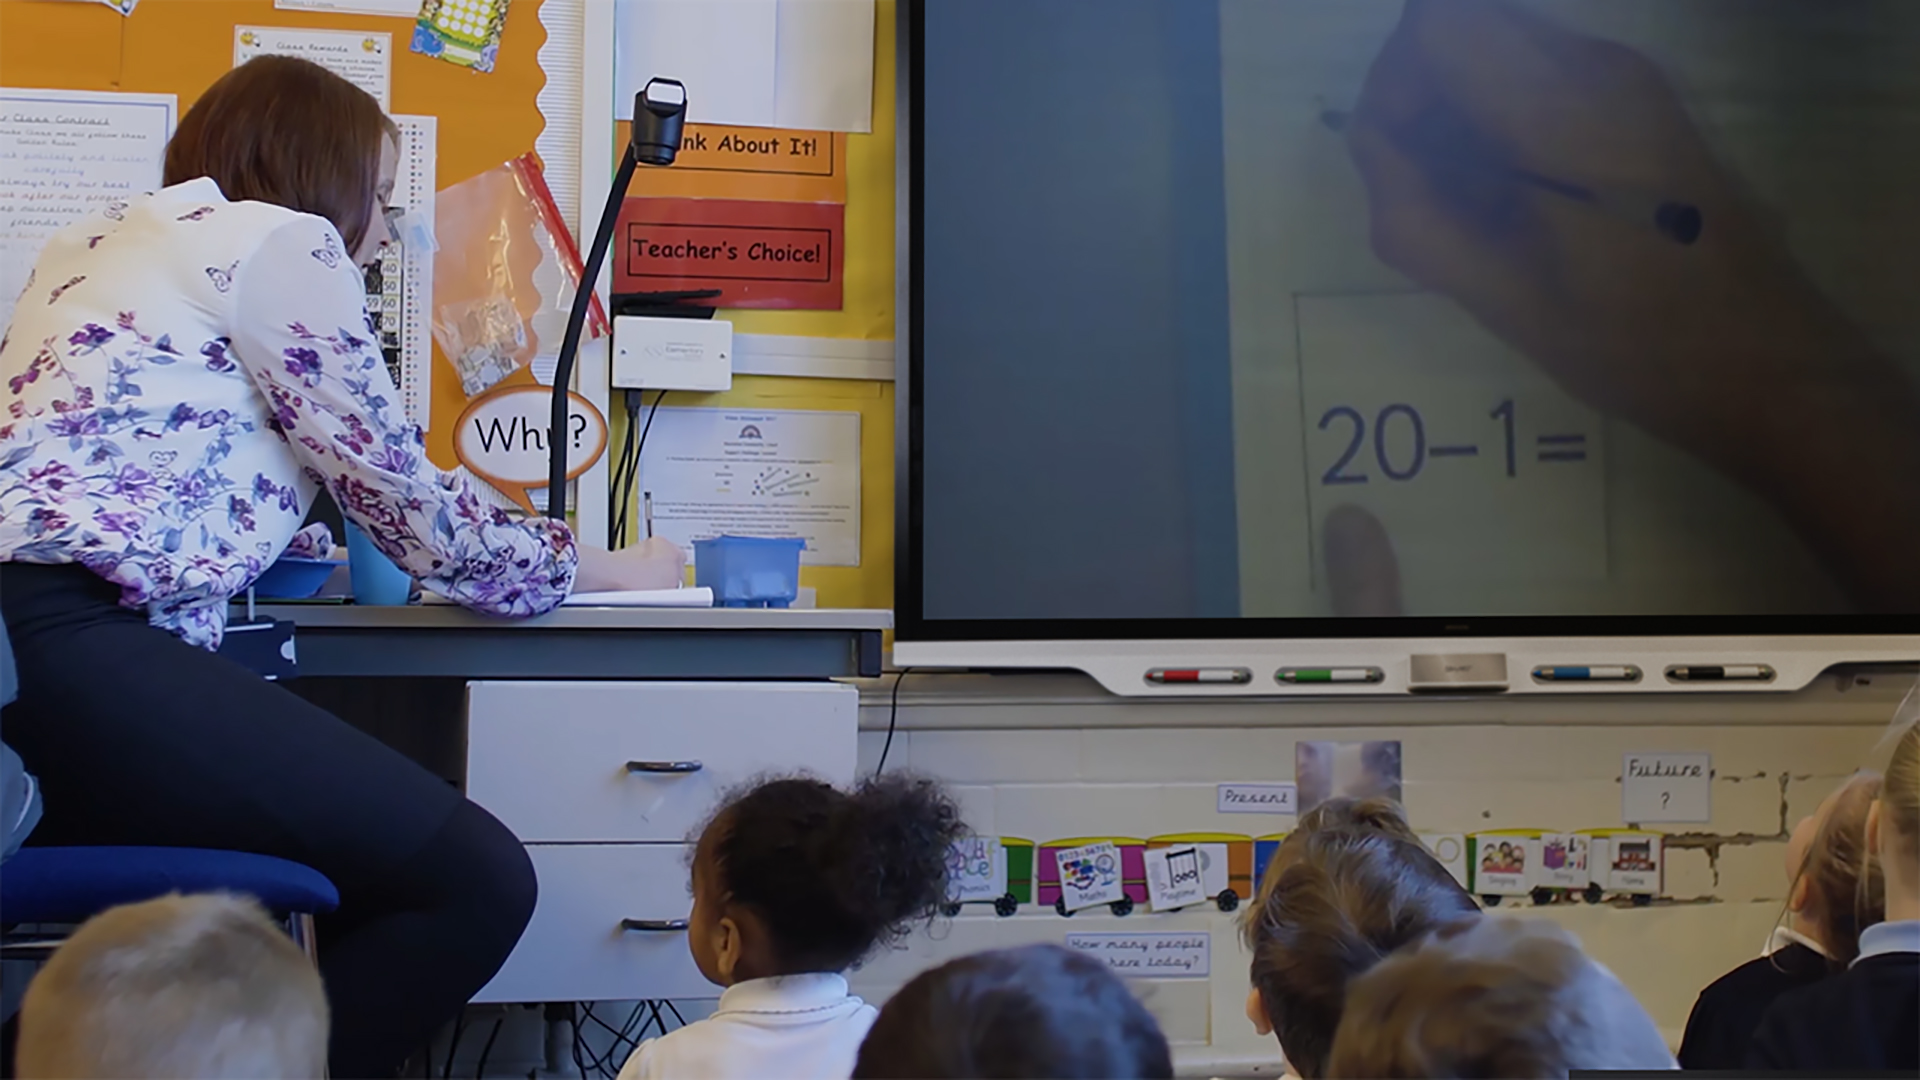 Teacher using the SMART Board 7000 series with a doc camera within a classroom